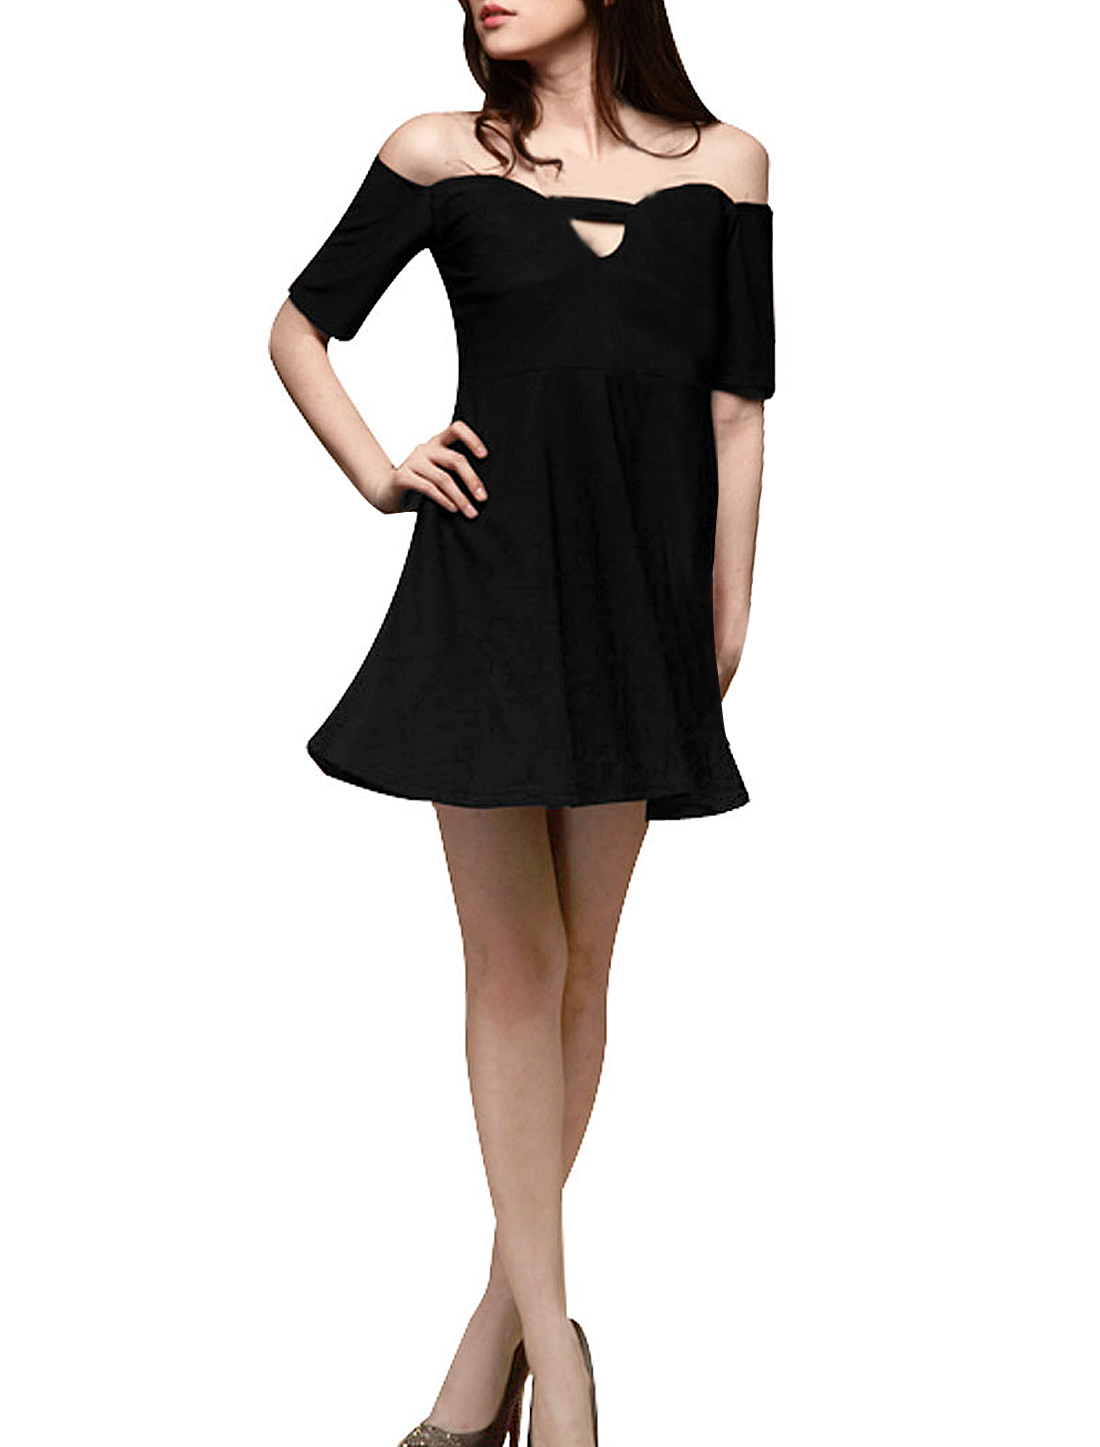 Black Boat Neck Short Sleeve Elastic Waist A Line Dress for Lady XS